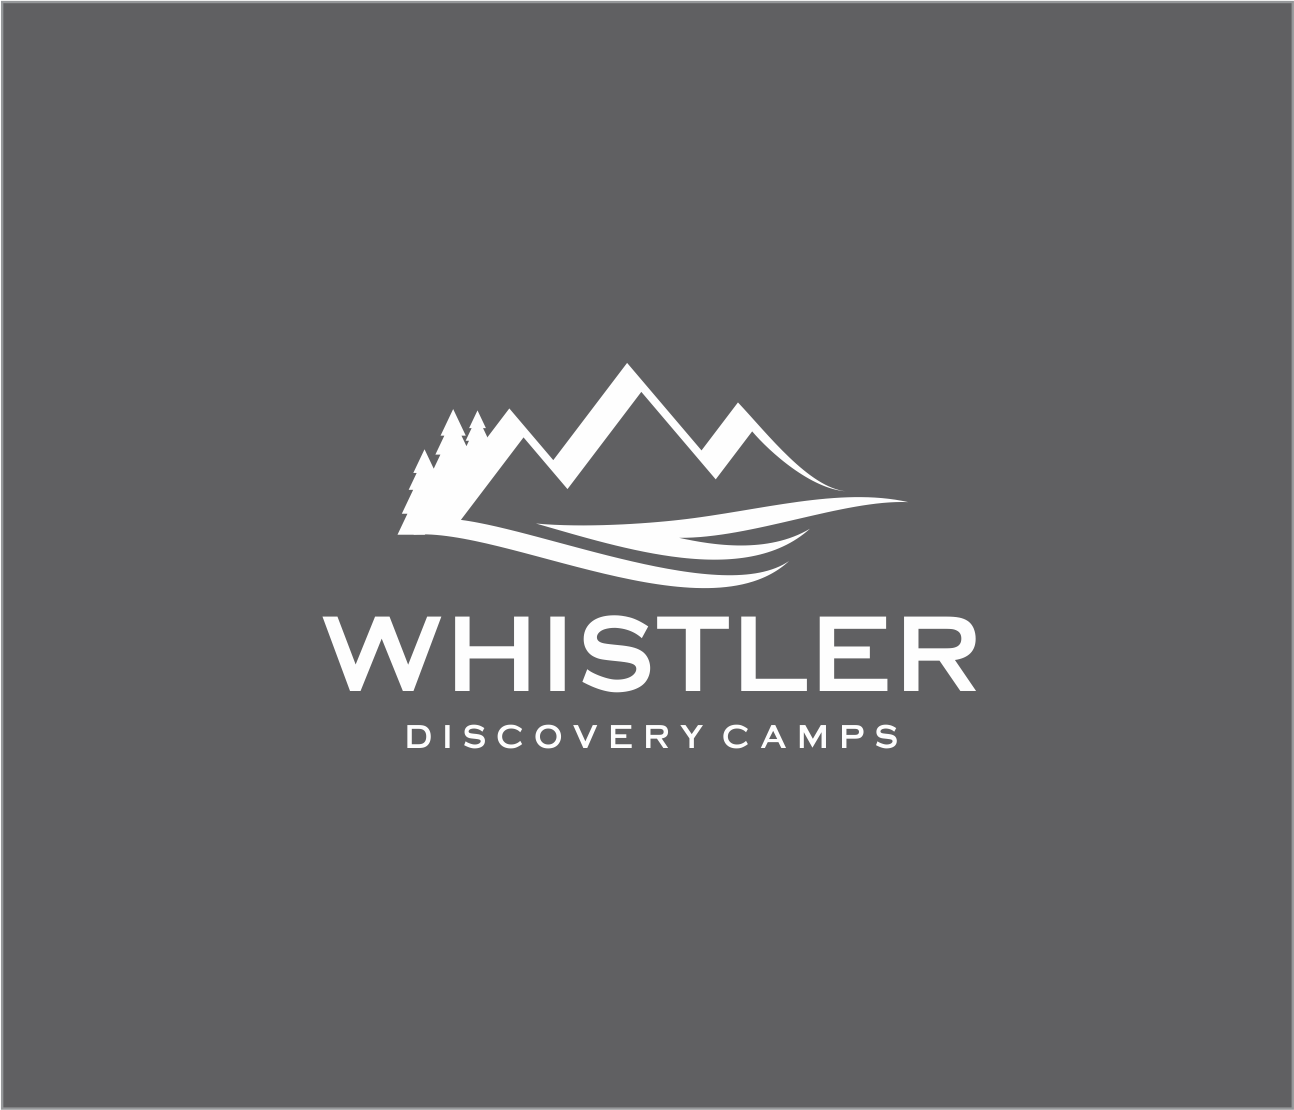 Logo Design by Armada Jamaluddin - Entry No. 118 in the Logo Design Contest Captivating Logo Design for Whistler Discovery Camps.